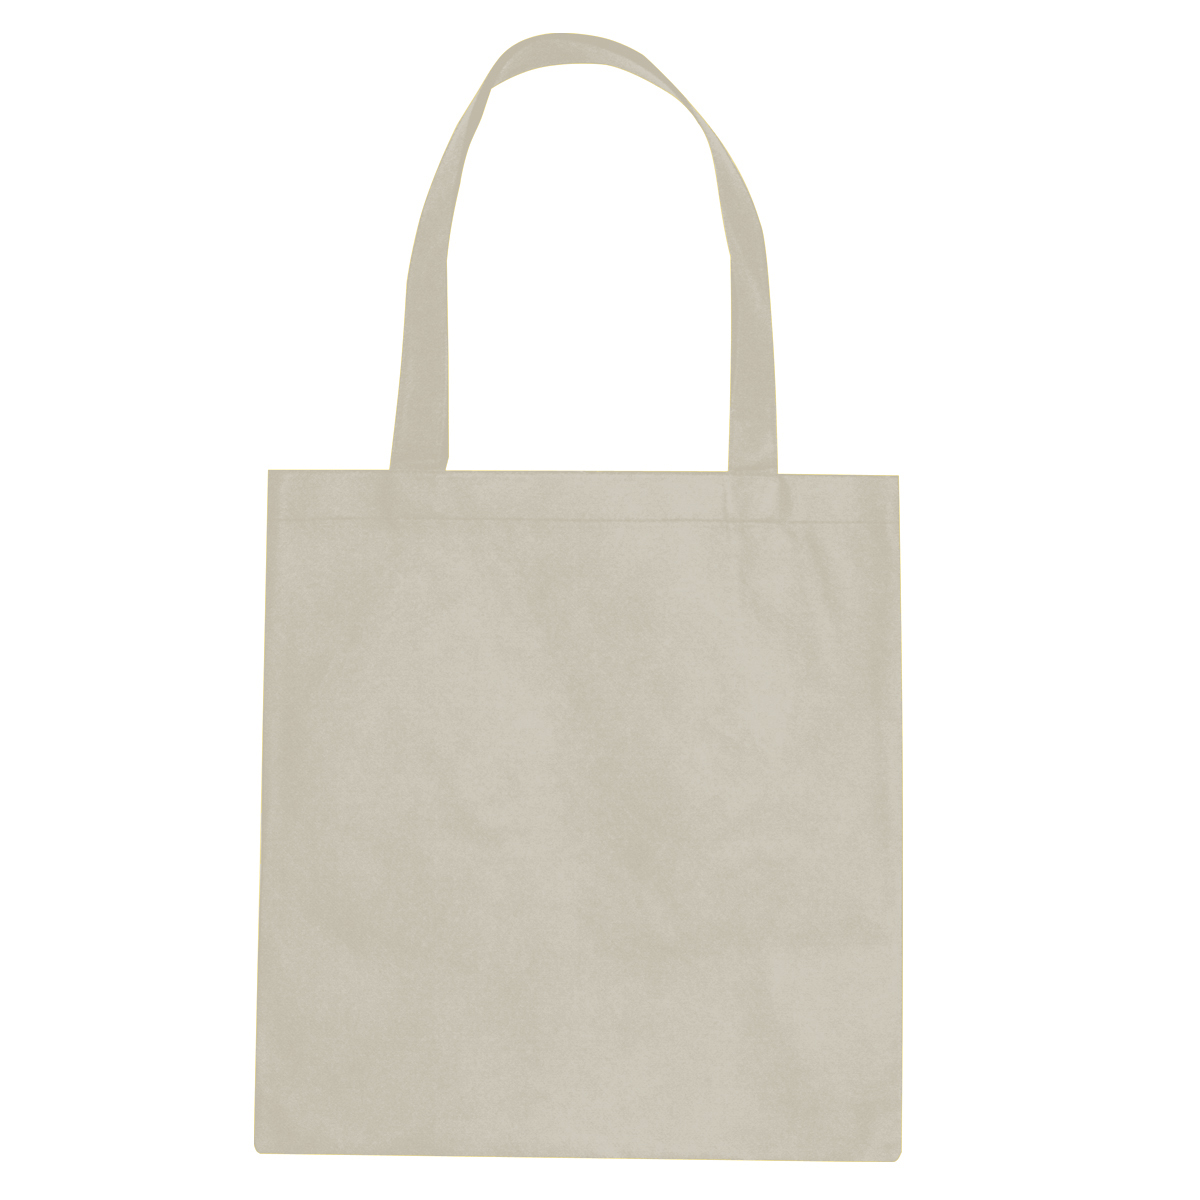 New product 2016 plain tote bags michaels of China